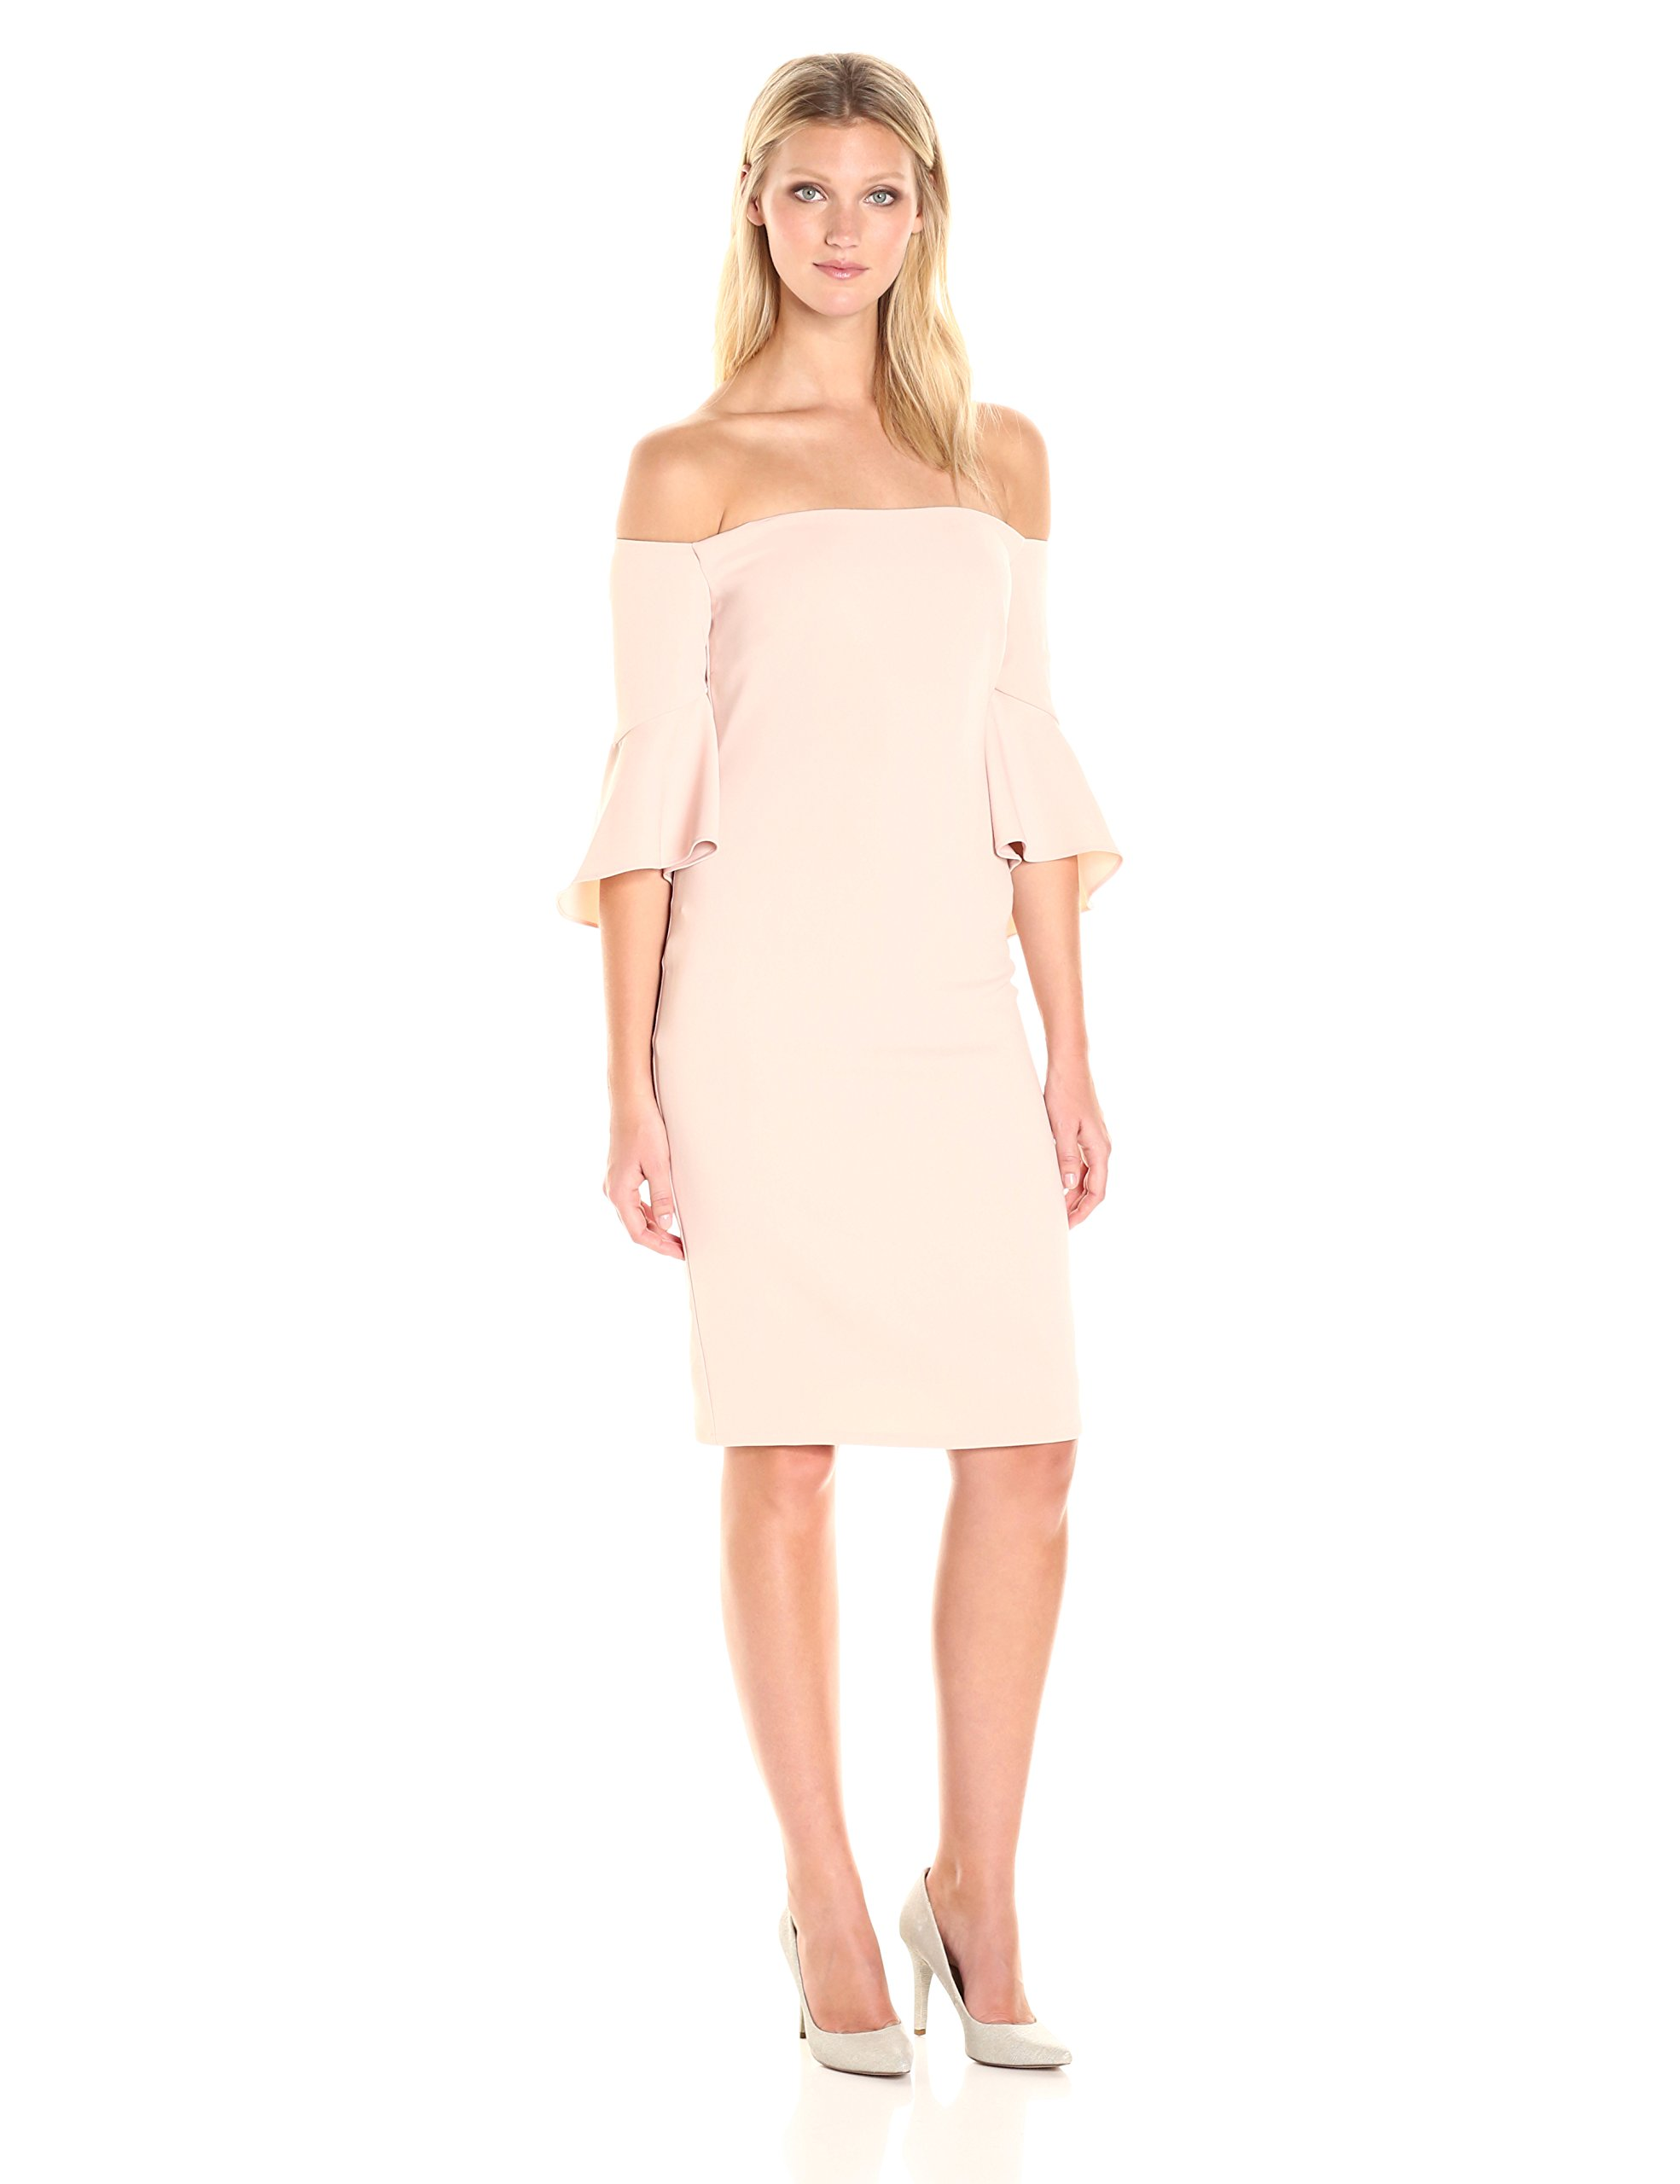 laundry BY SHELLI SEGAL Women's Crepe Off The Shoulder Cocktail, Tinted Blush, 8